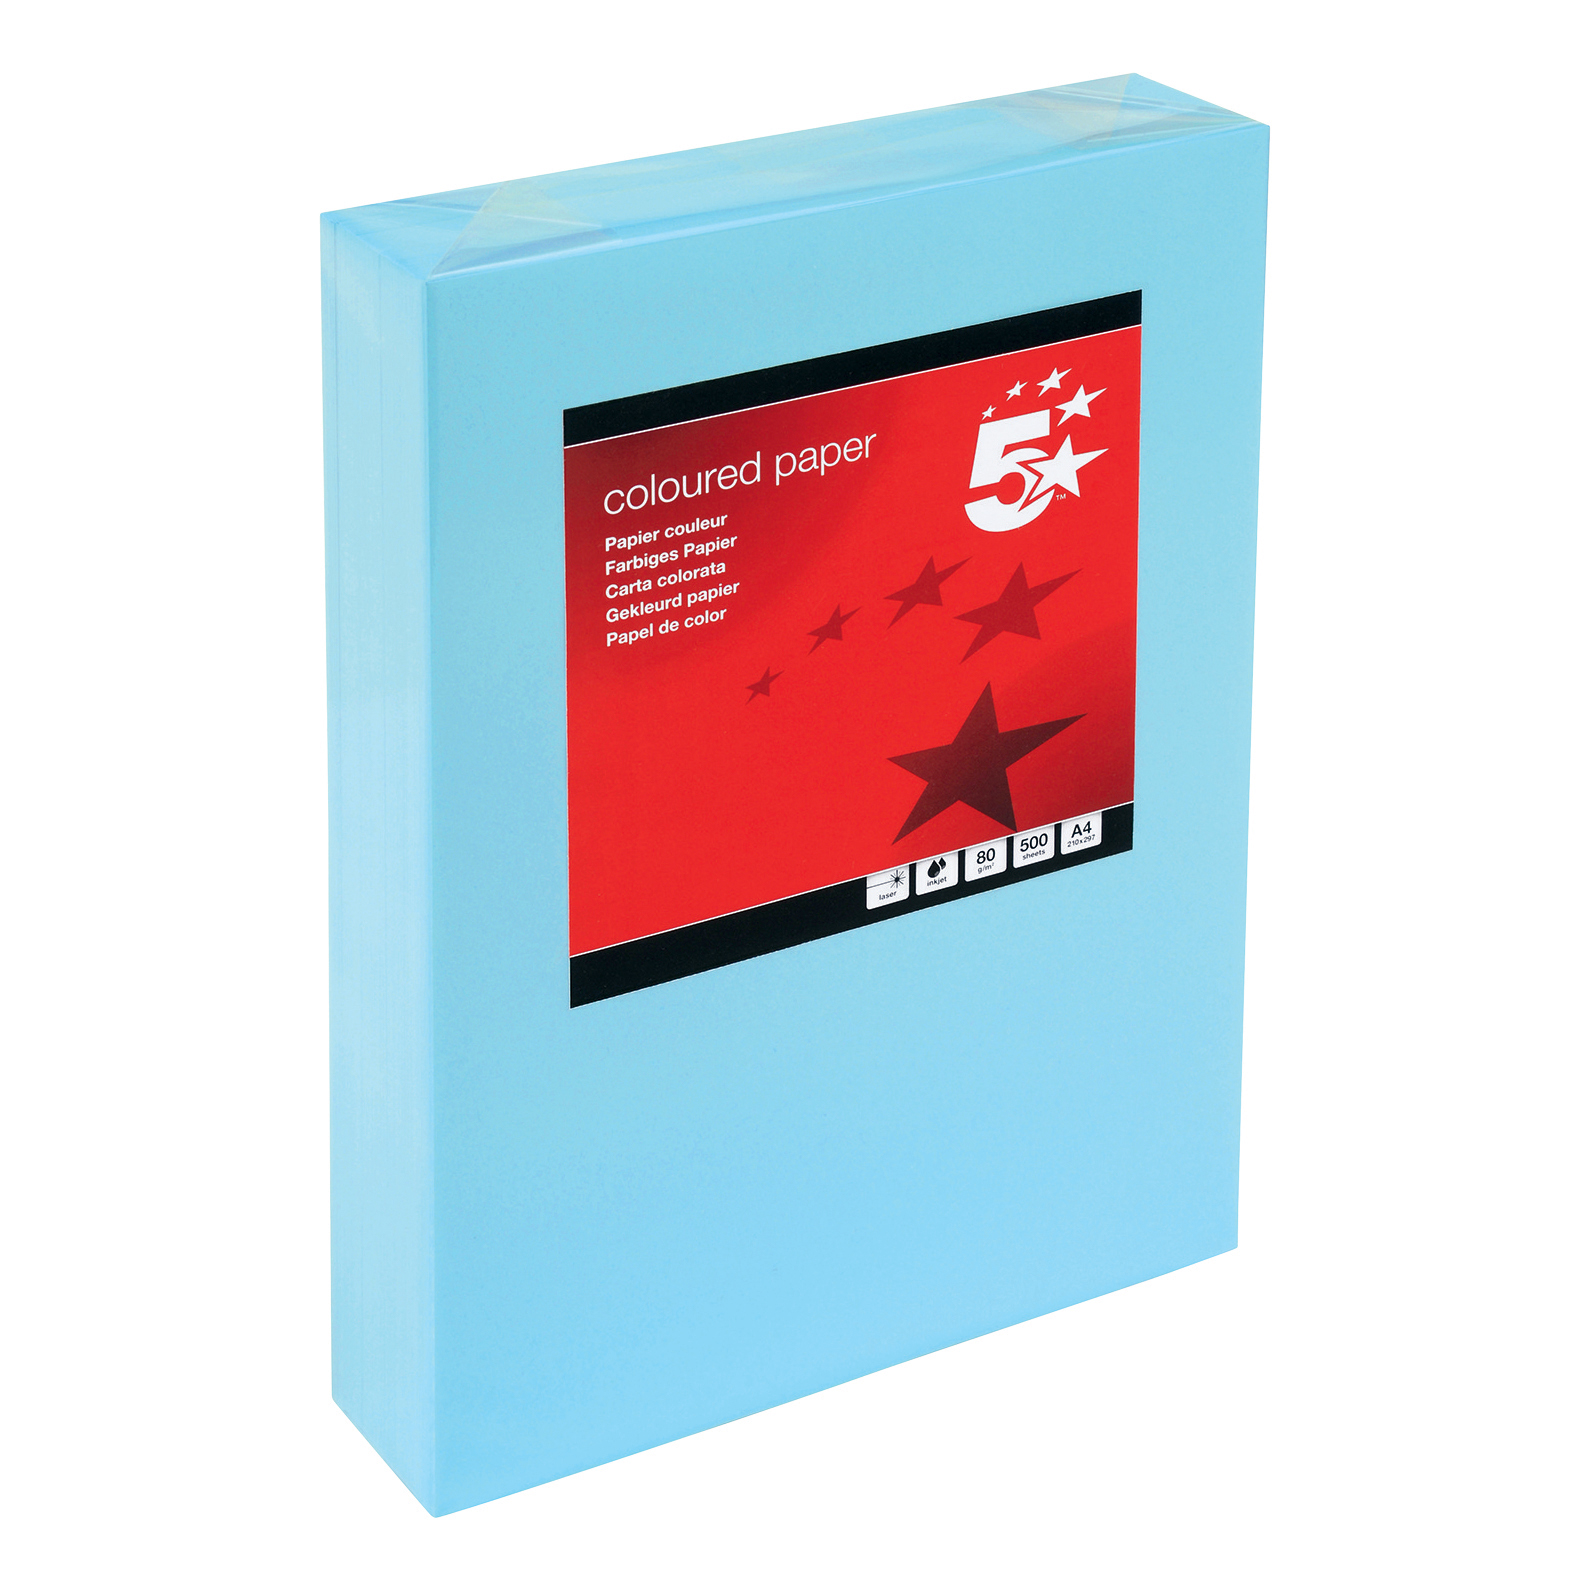 5 Star Copier Paper Multifunctional 80gsm 500 Sheets per Ream A4 Medium Blue